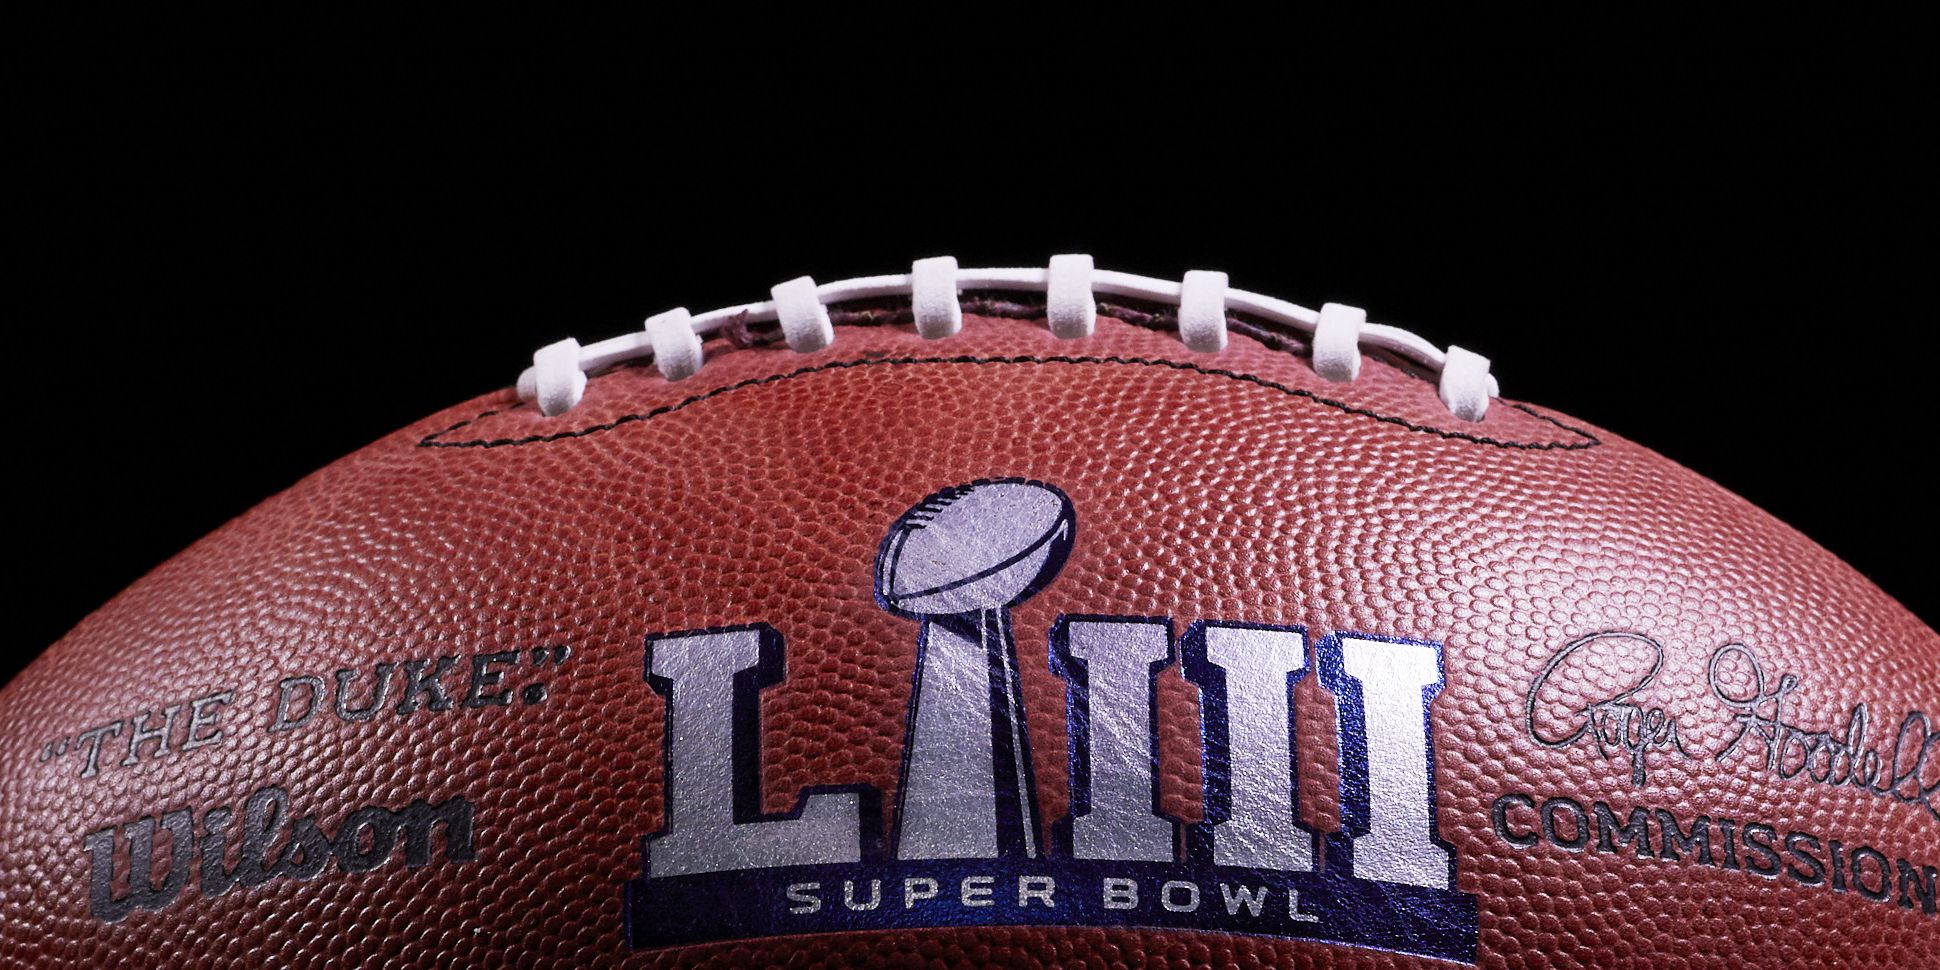 Ticket prices slump and then rebound for Patriots-Rams Super Bowl game